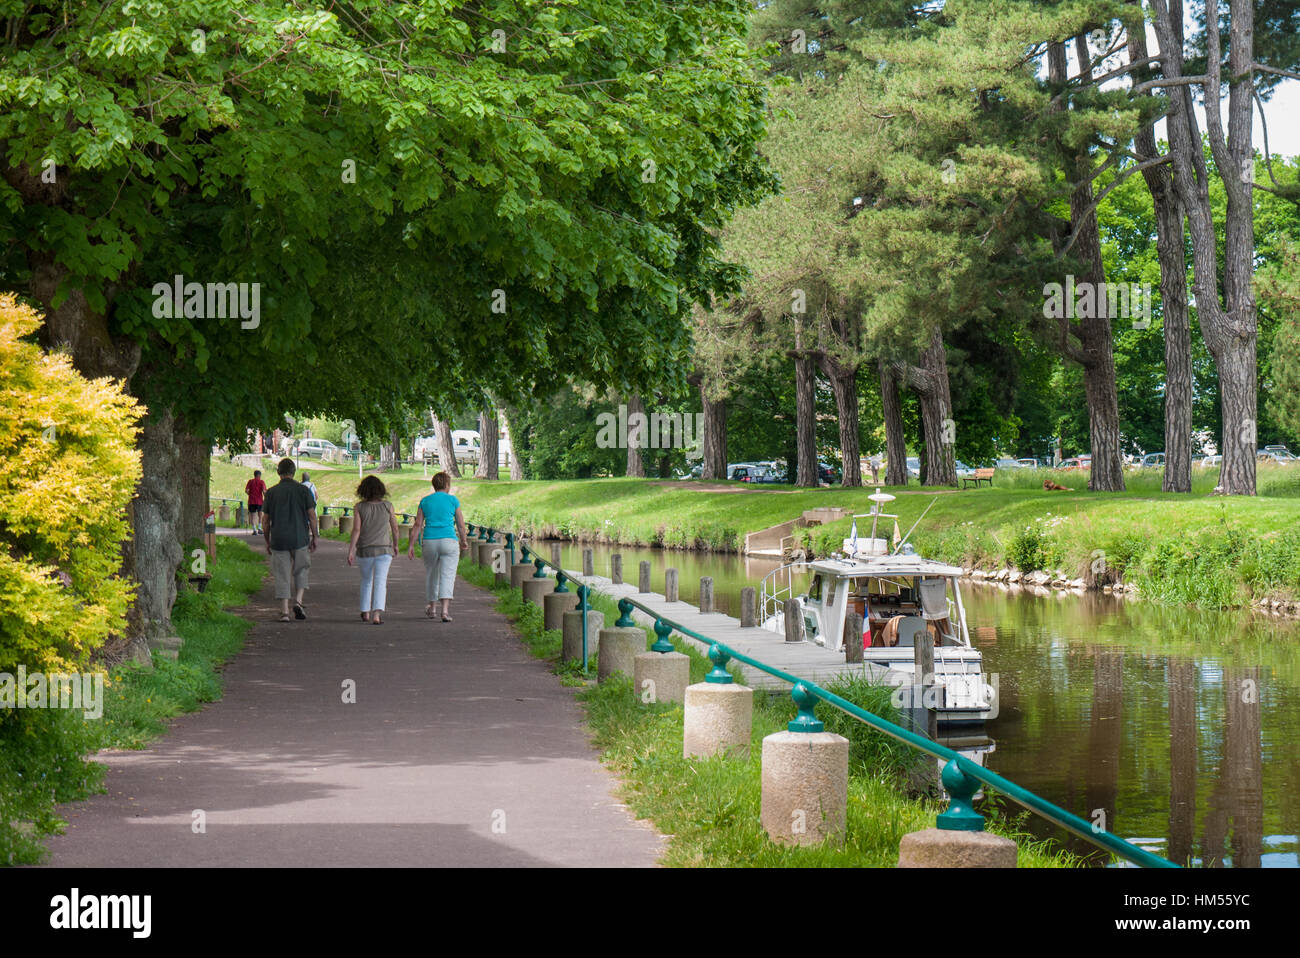 'Nantes Brest canal' Malestroit, Brittany France, - Stock Image